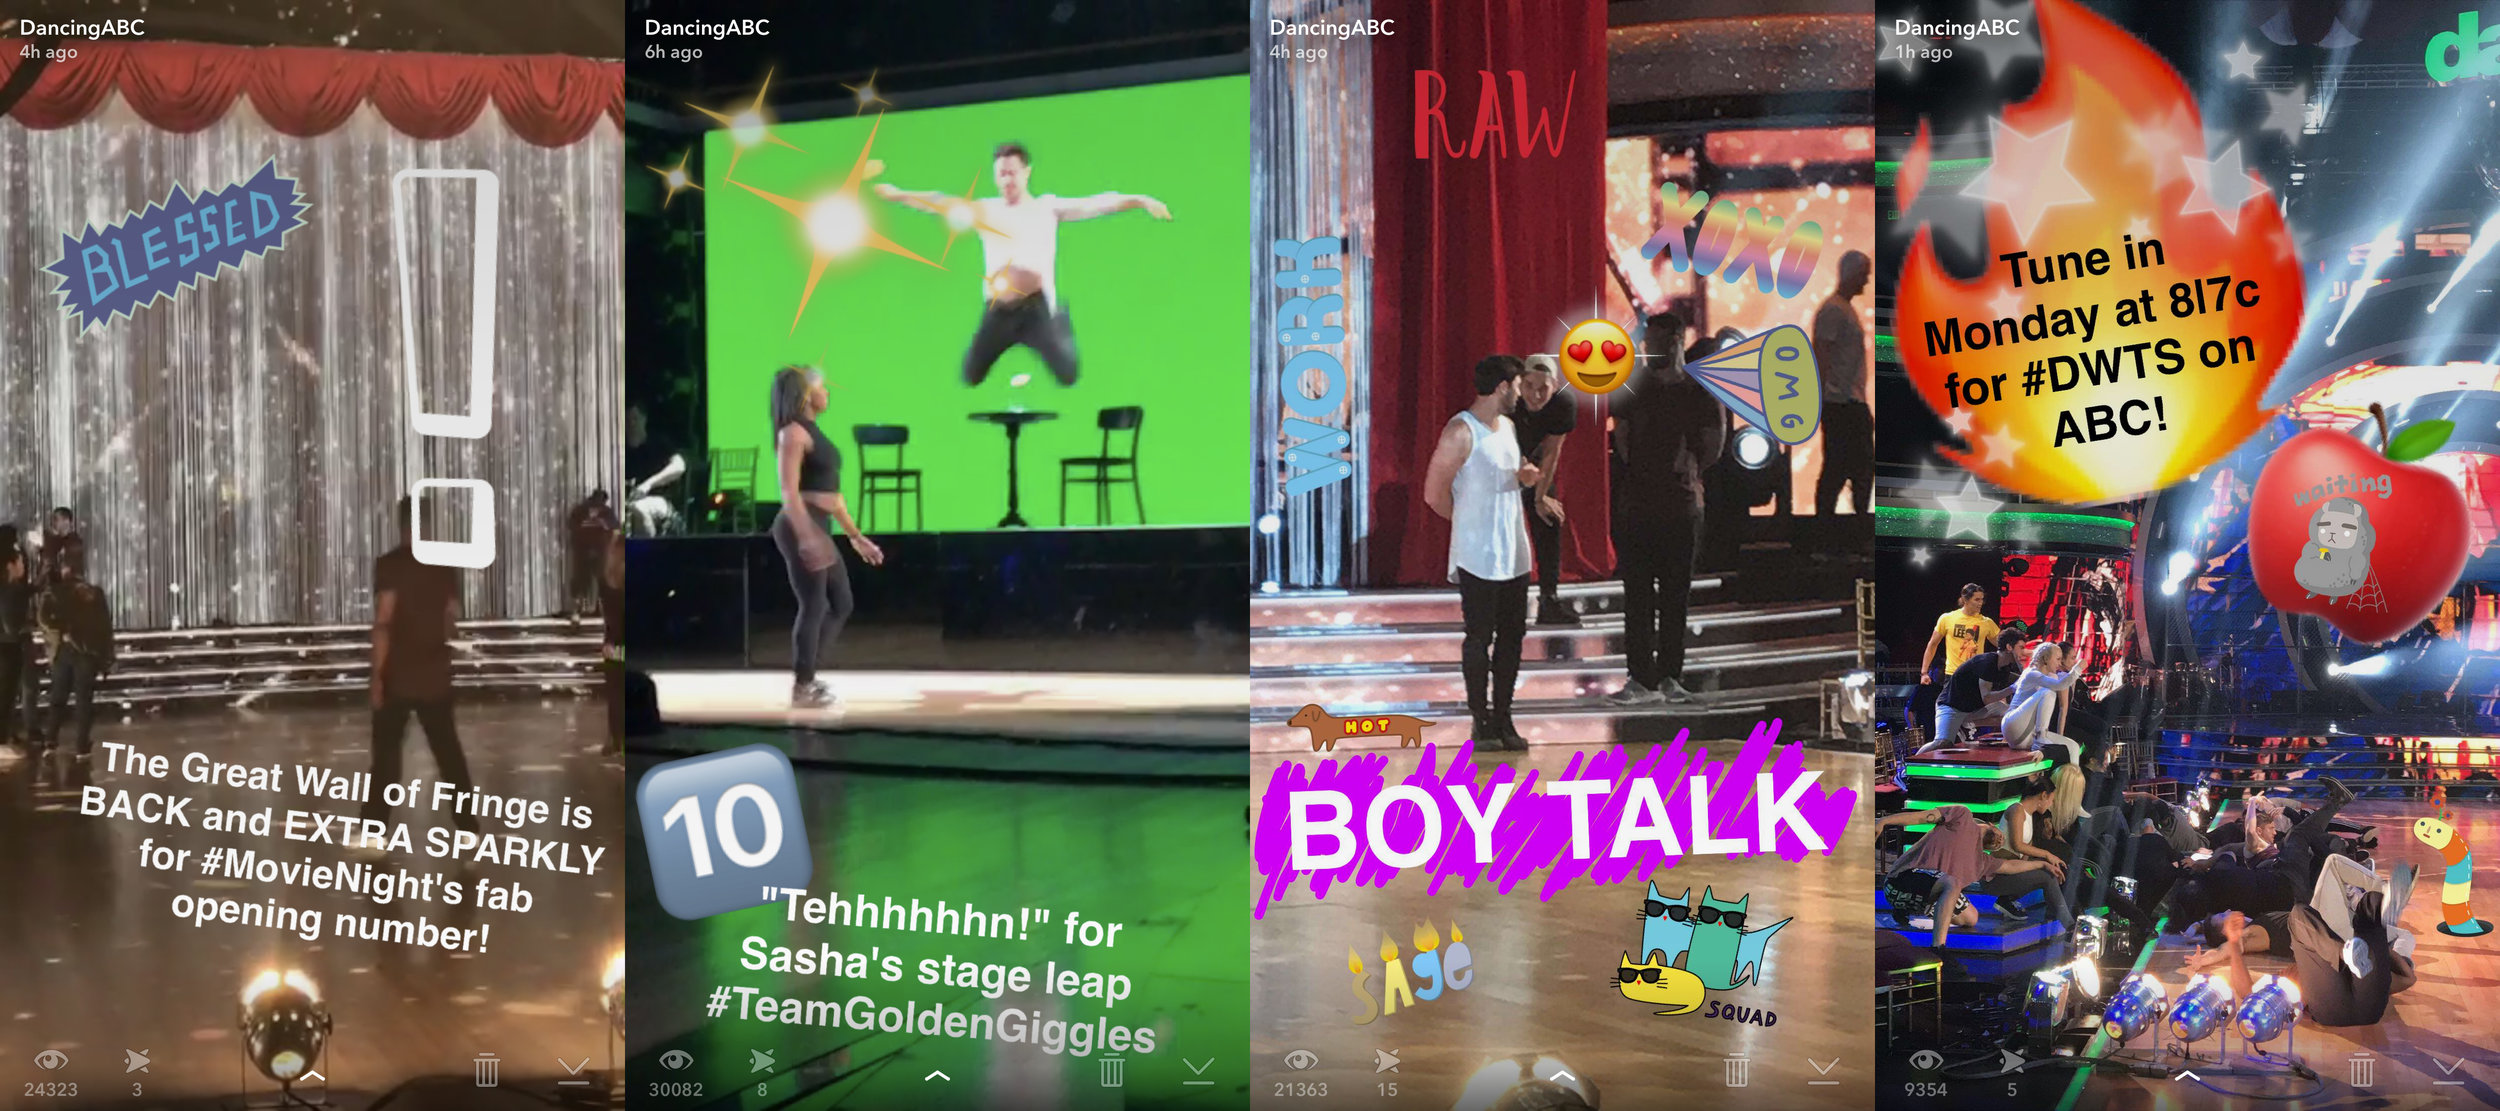 """DancingABC"" on Snapchat"